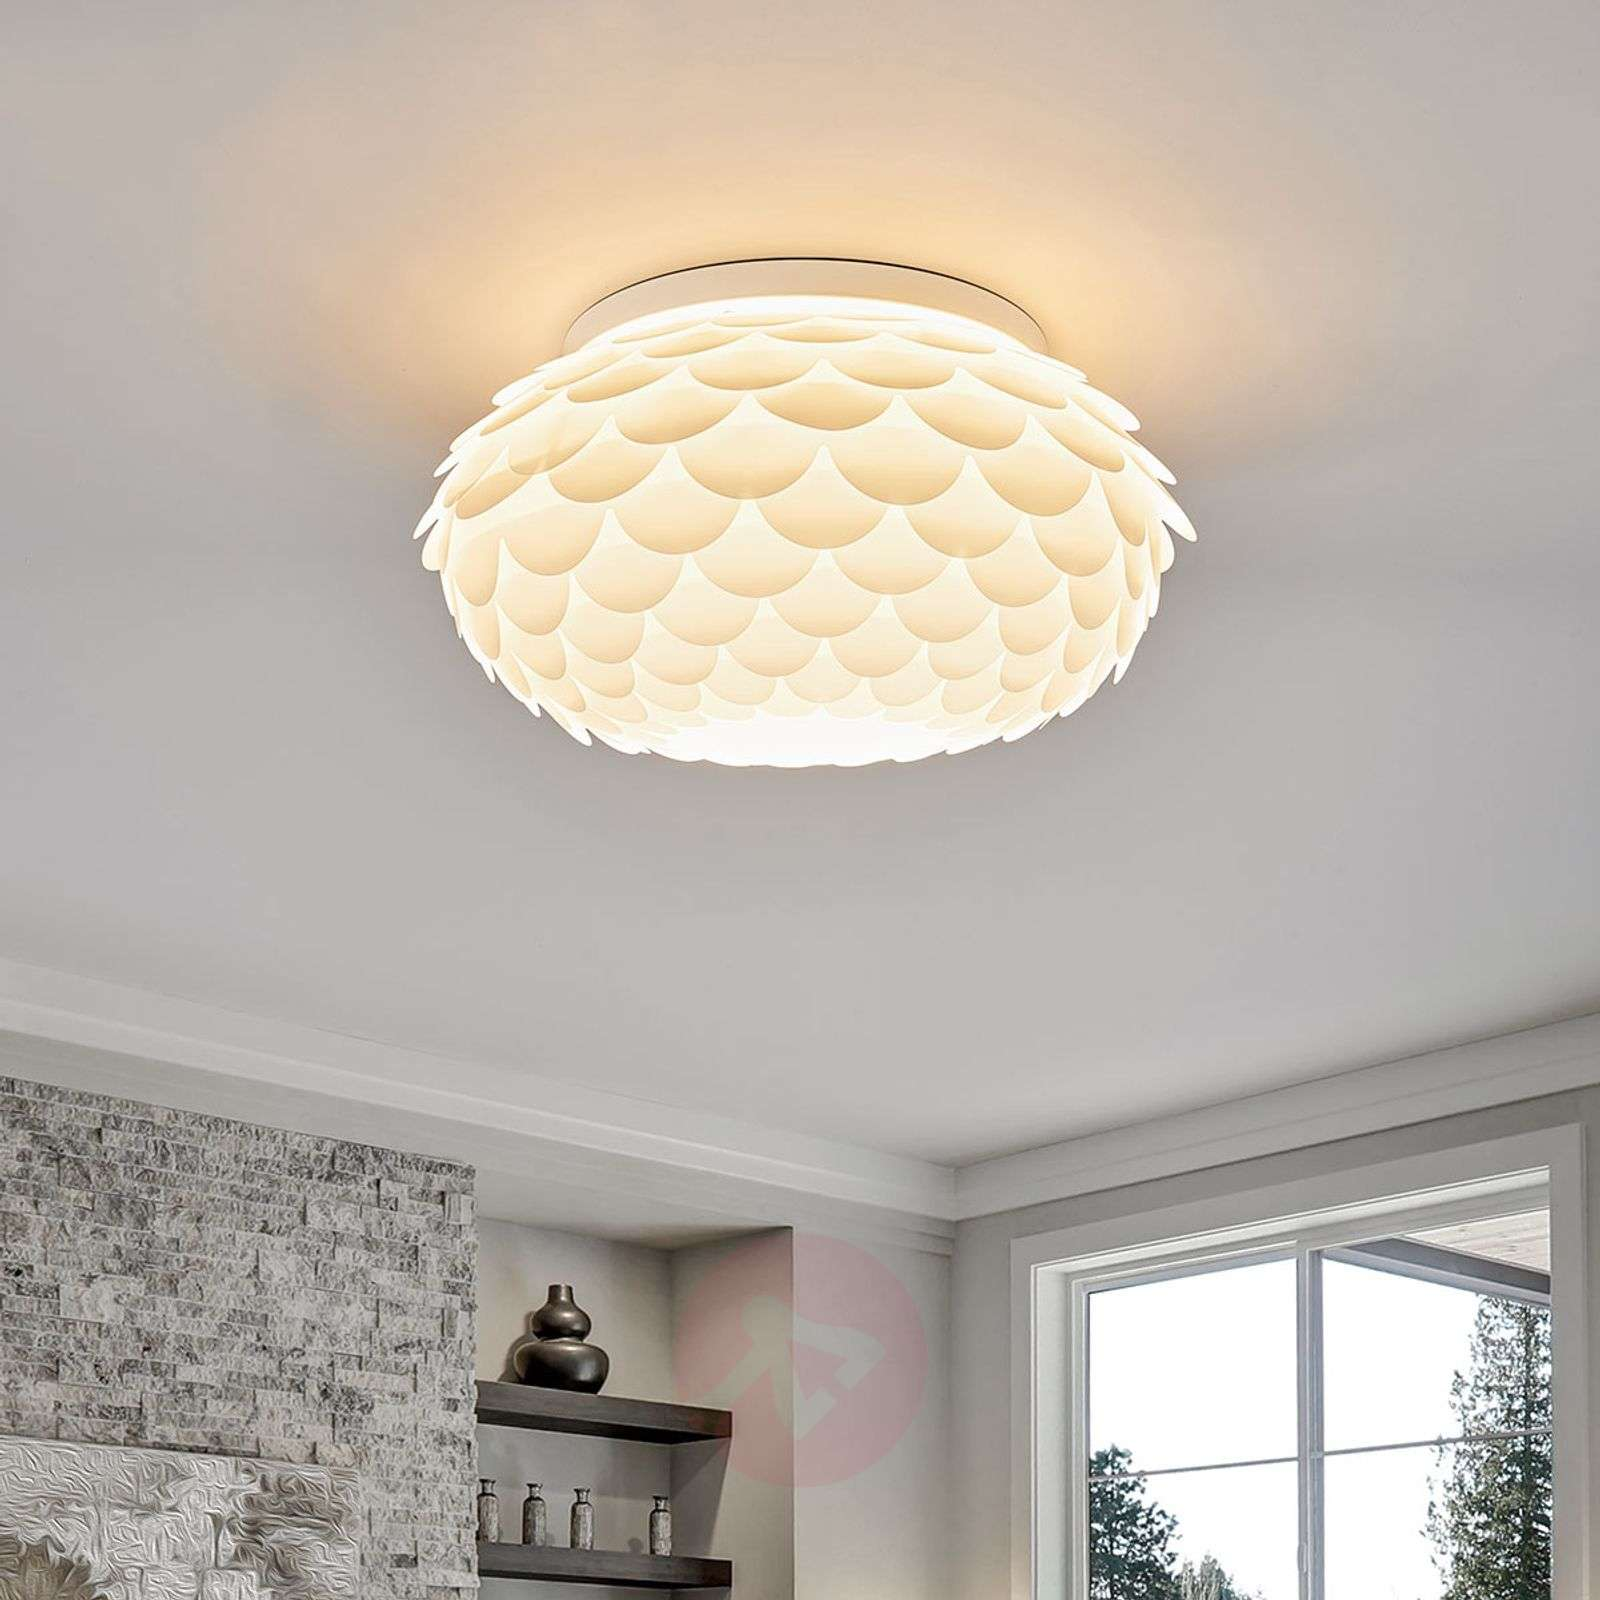 Plafondlamp Marees in wit, rond-8032153-02